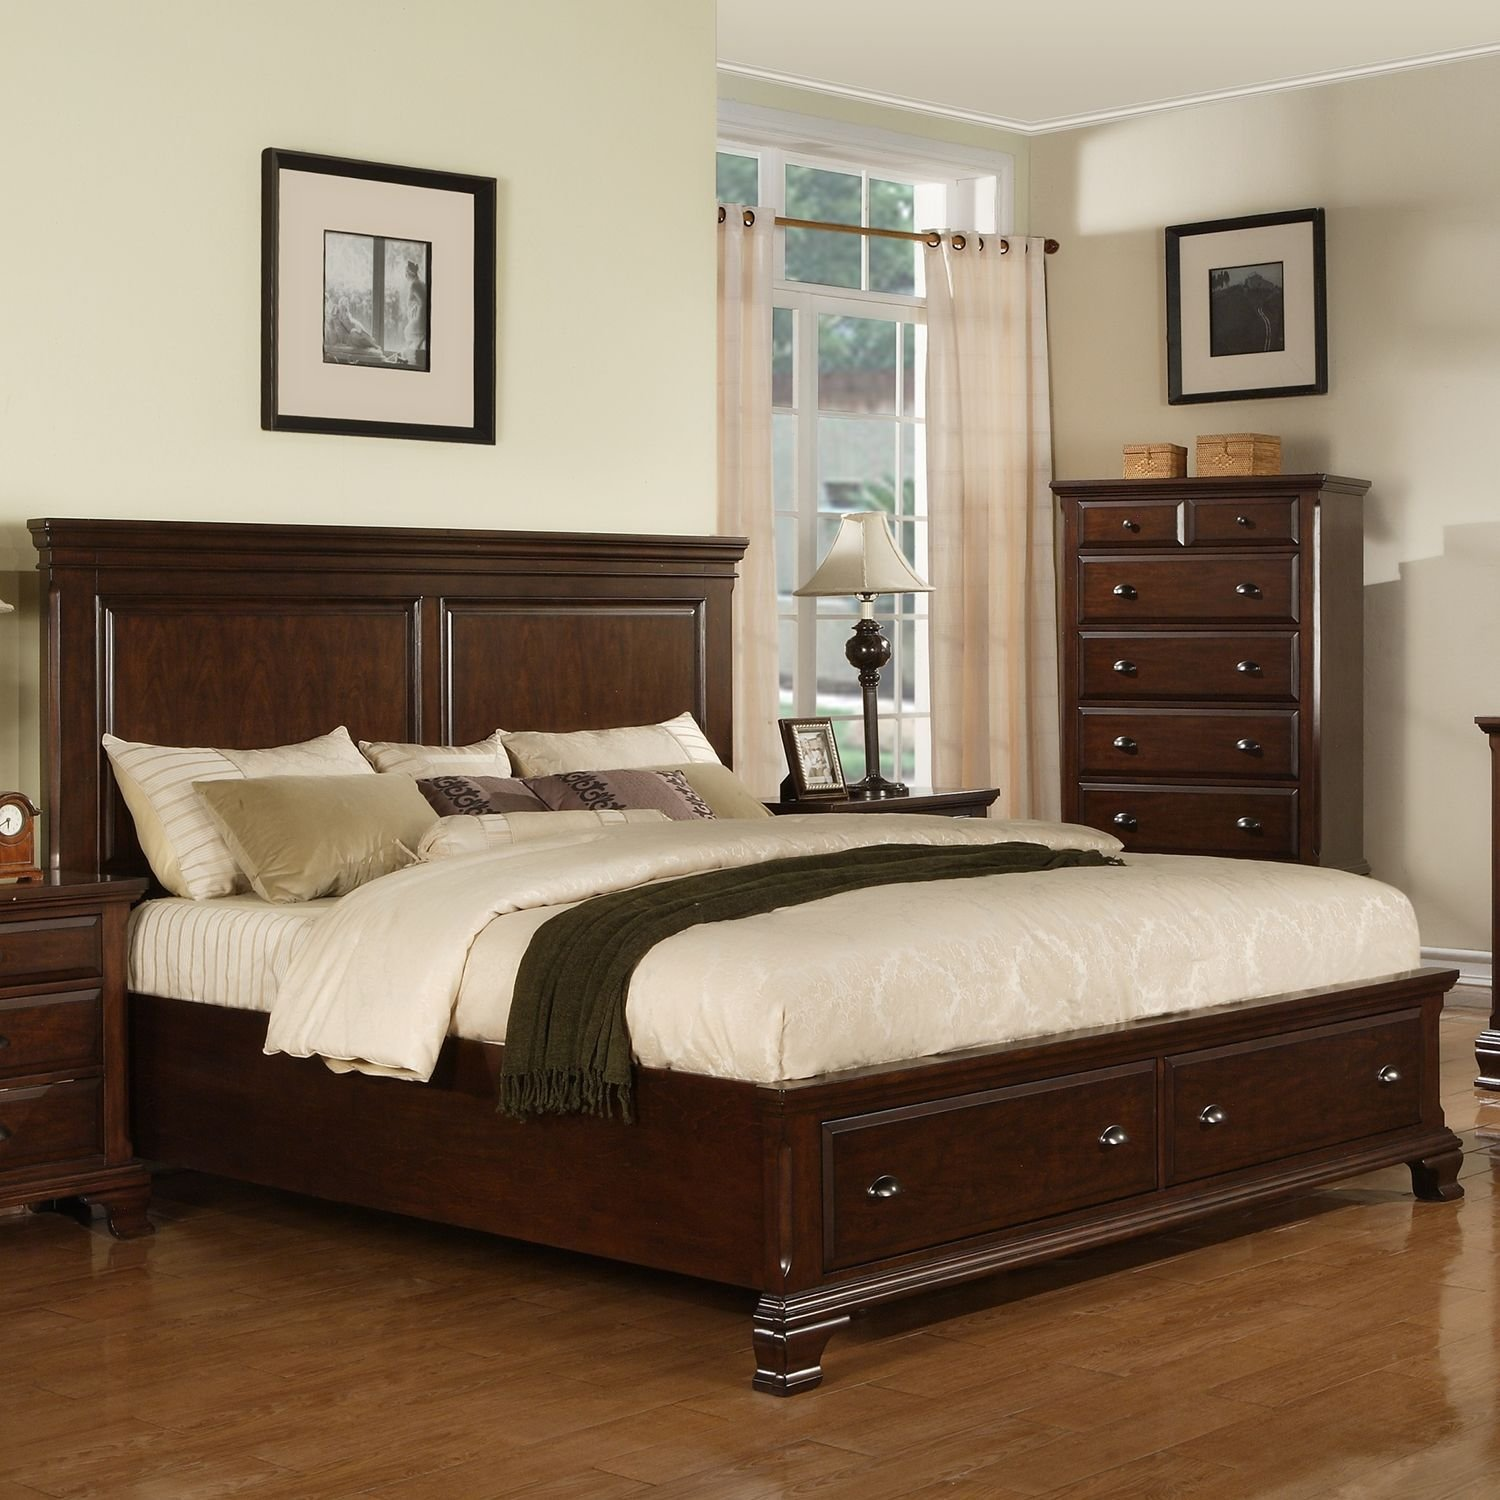 Best Brinley Cherry Storage Bed Choose Size See Best Ideas With Pictures